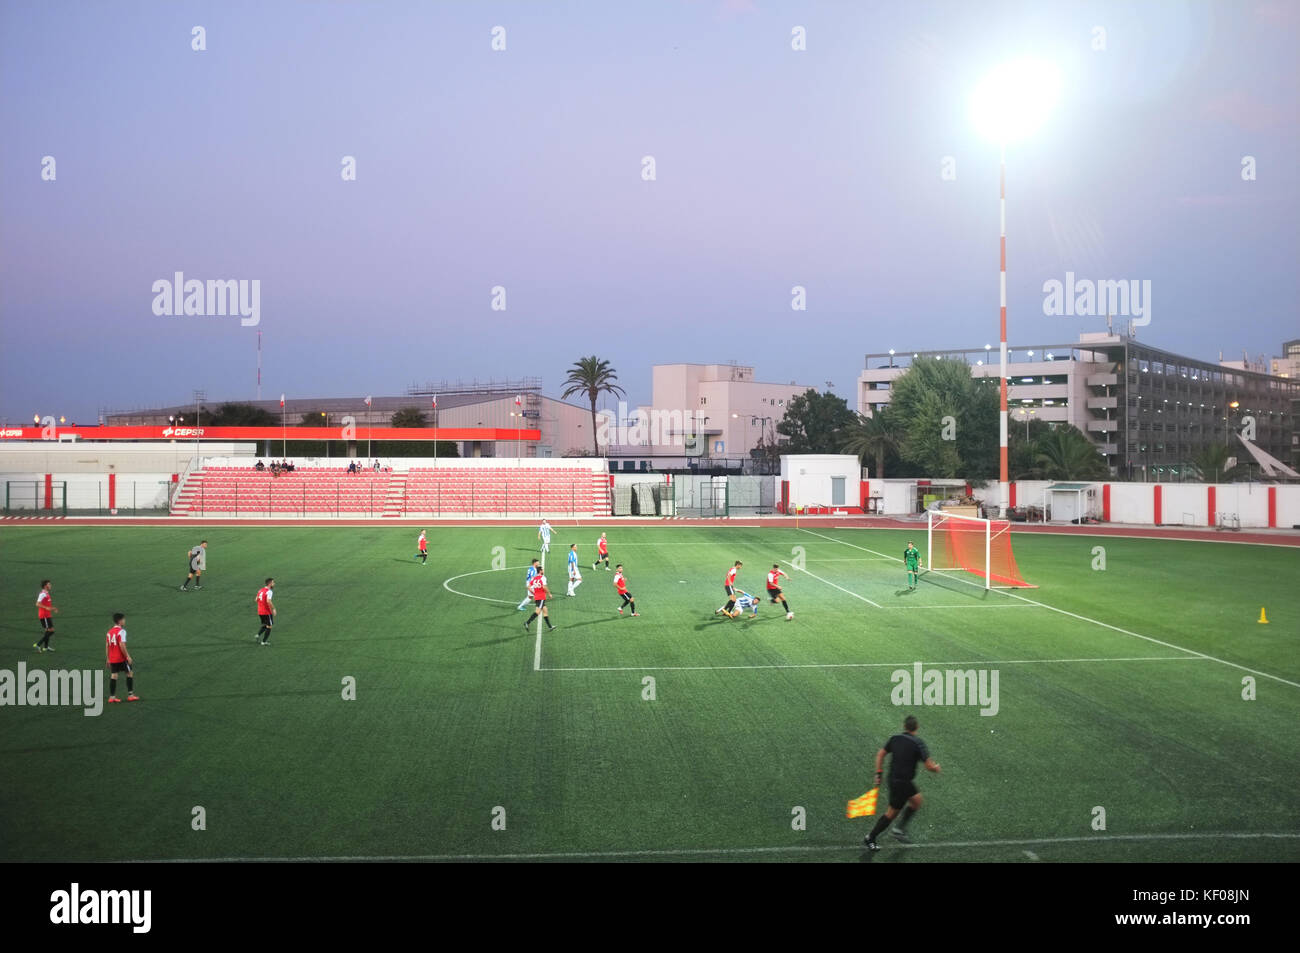 Football match in the evening at Victoria Stadium, Gibraltar, September 2017 - Stock Image